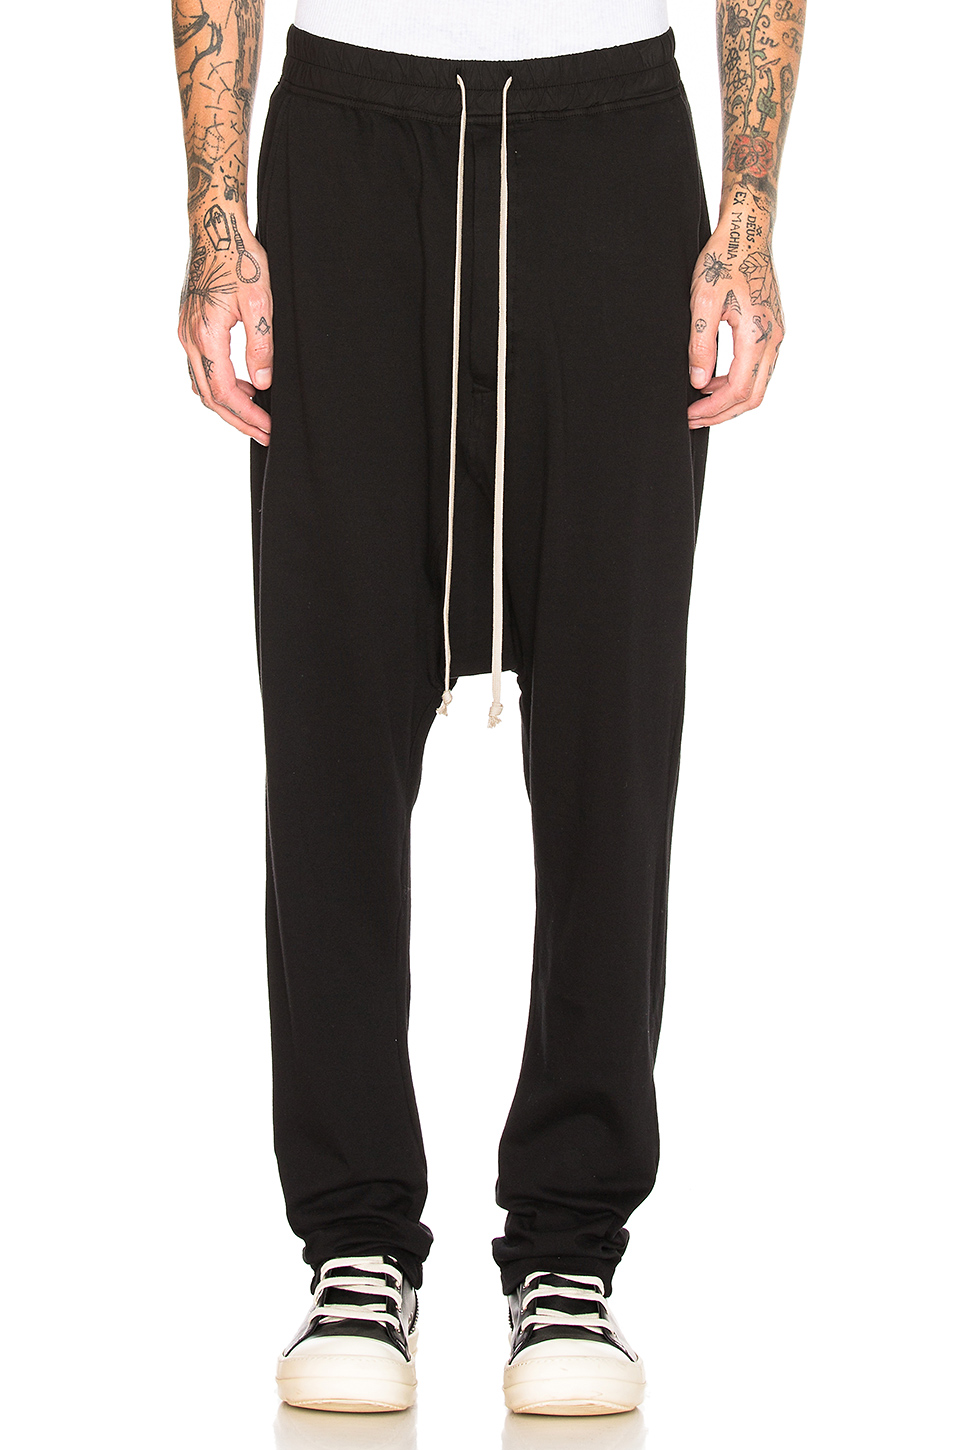 DRKSHDW by Rick Owens Drawstring Long Pant in Black